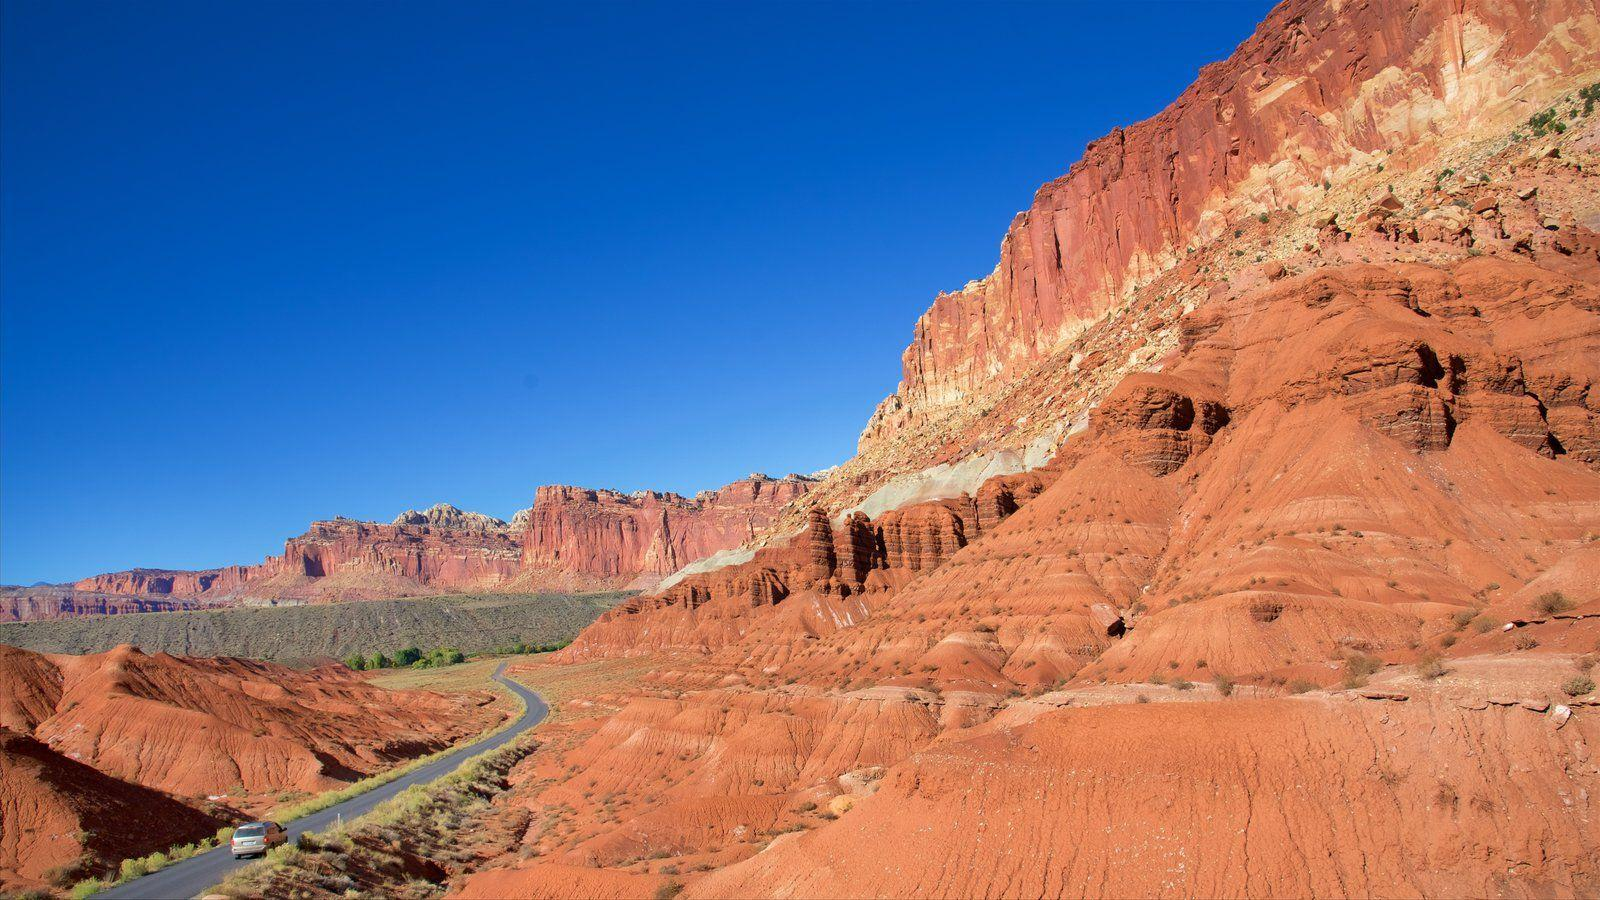 Central Utah Pictures: View Photos & Image of Central Utah